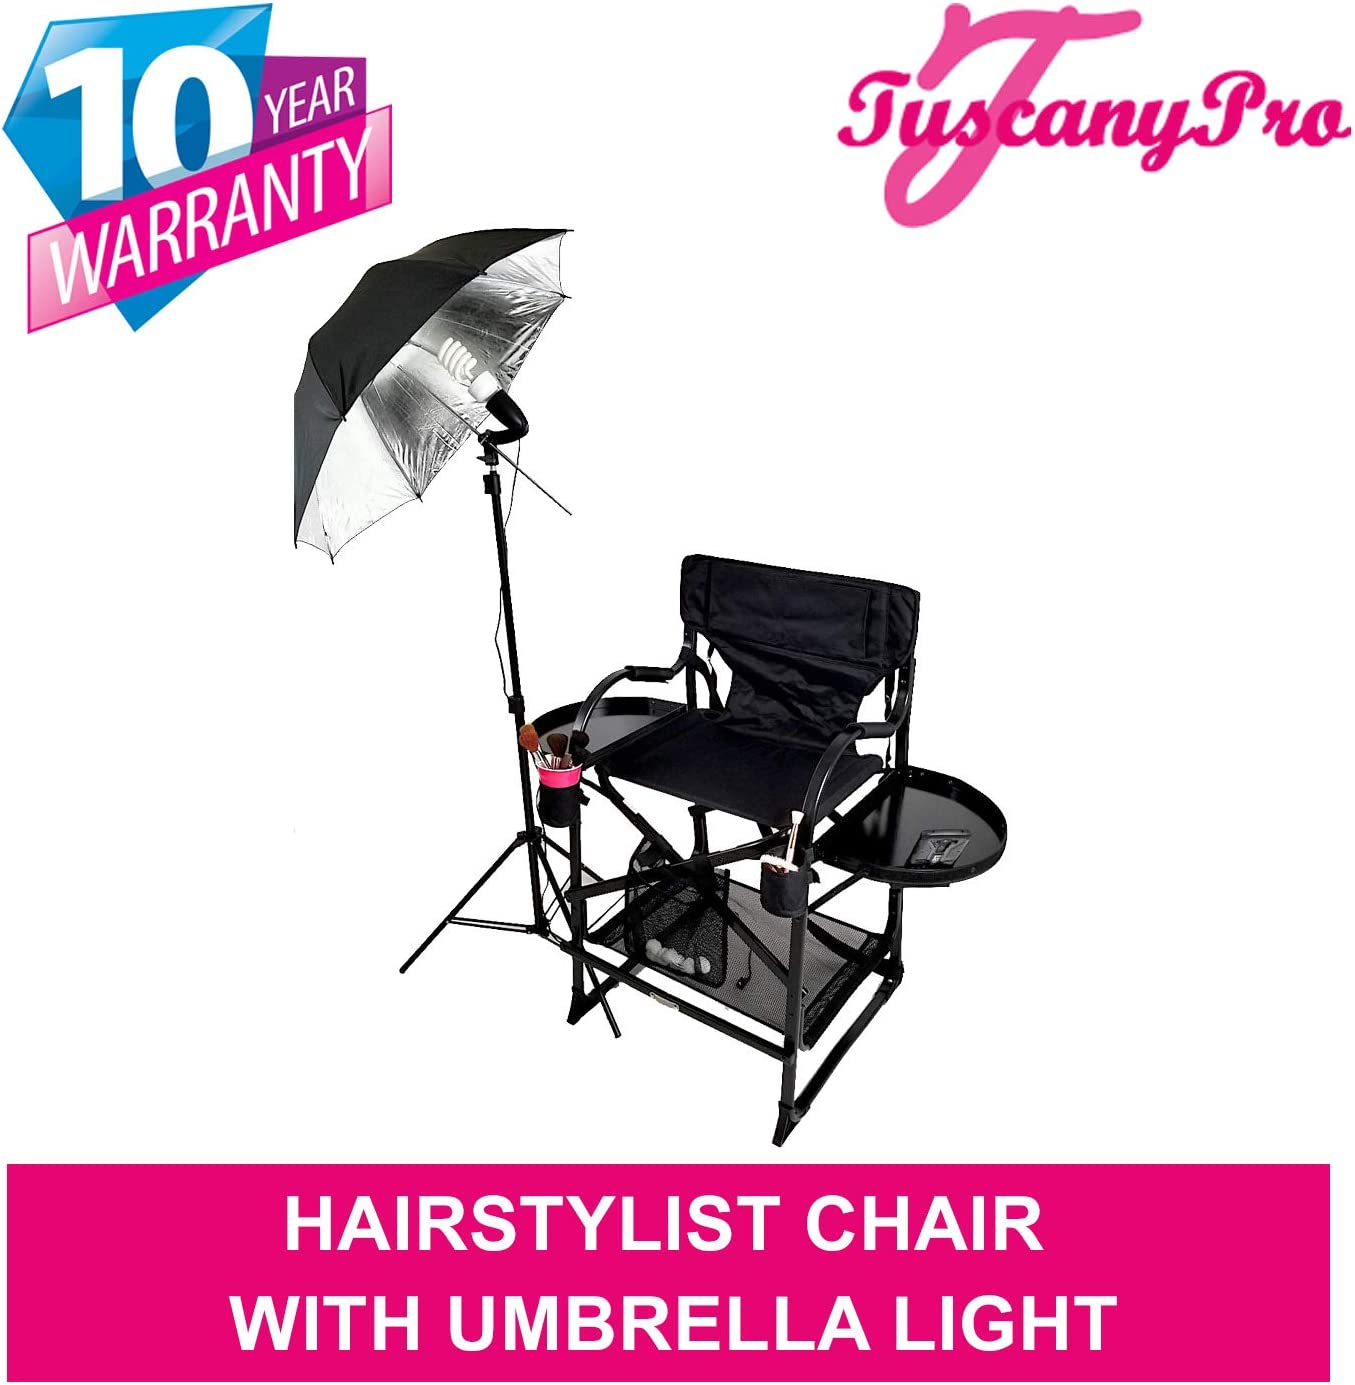 PRESALE—- MU2R Tuscany PRO Hairstylist Chair w Light-5 Years Warranty Product-25 Seat Height-THIS IS THE MOST ELECTED CHAIR BY HAIRSTYLISTS